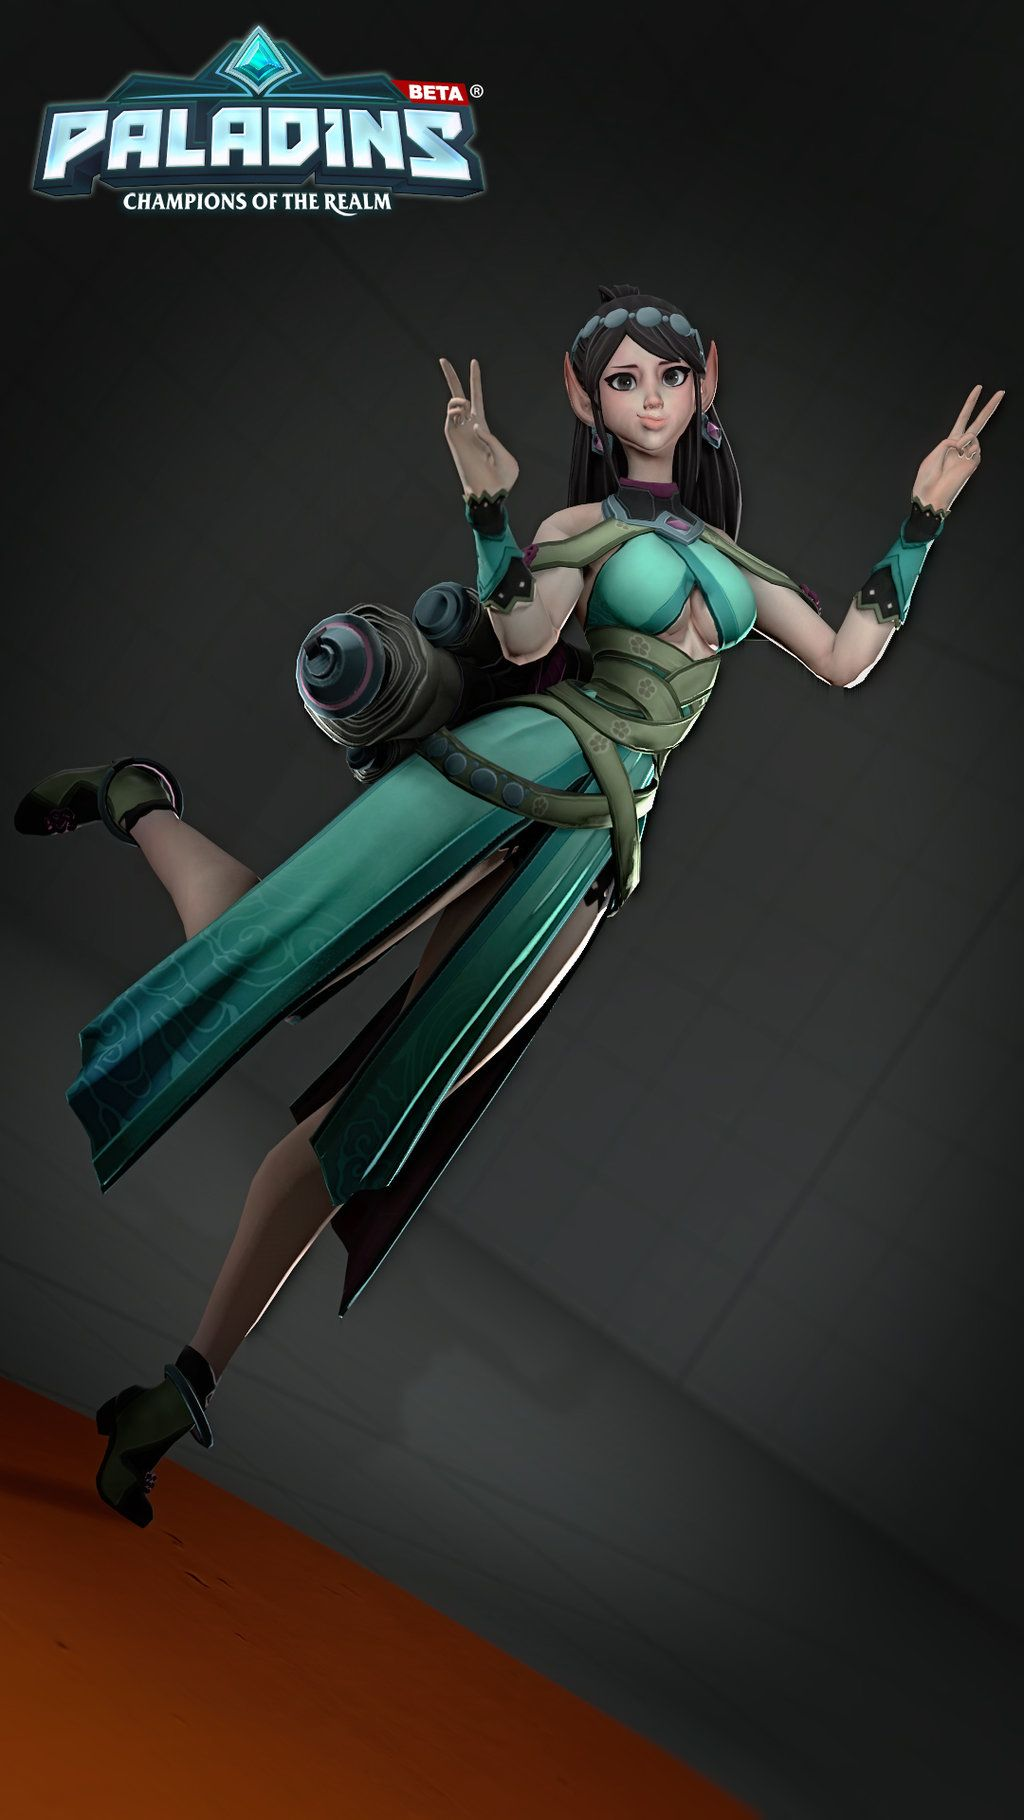 http://img13.deviantart.net/0afe/i/2016/305/a/a/_wip__paladins___ying_model_by_aeridiccore-damycdf.jpg